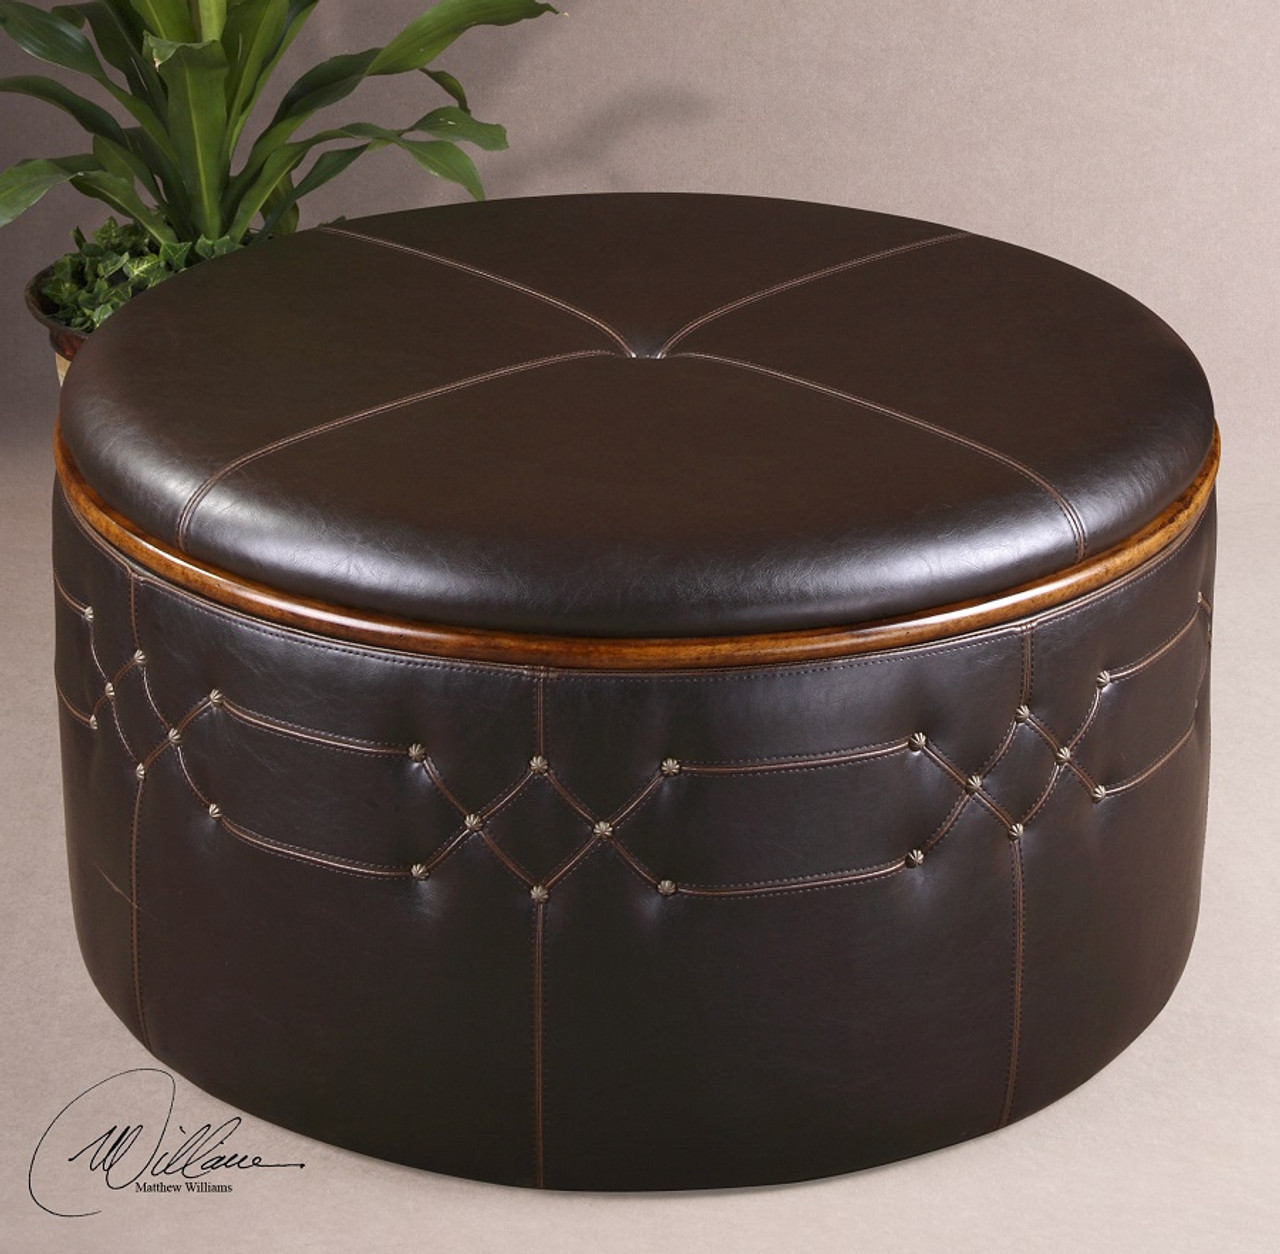 Phenomenal Brunner Round Leather Ottoman With Storage Gmtry Best Dining Table And Chair Ideas Images Gmtryco